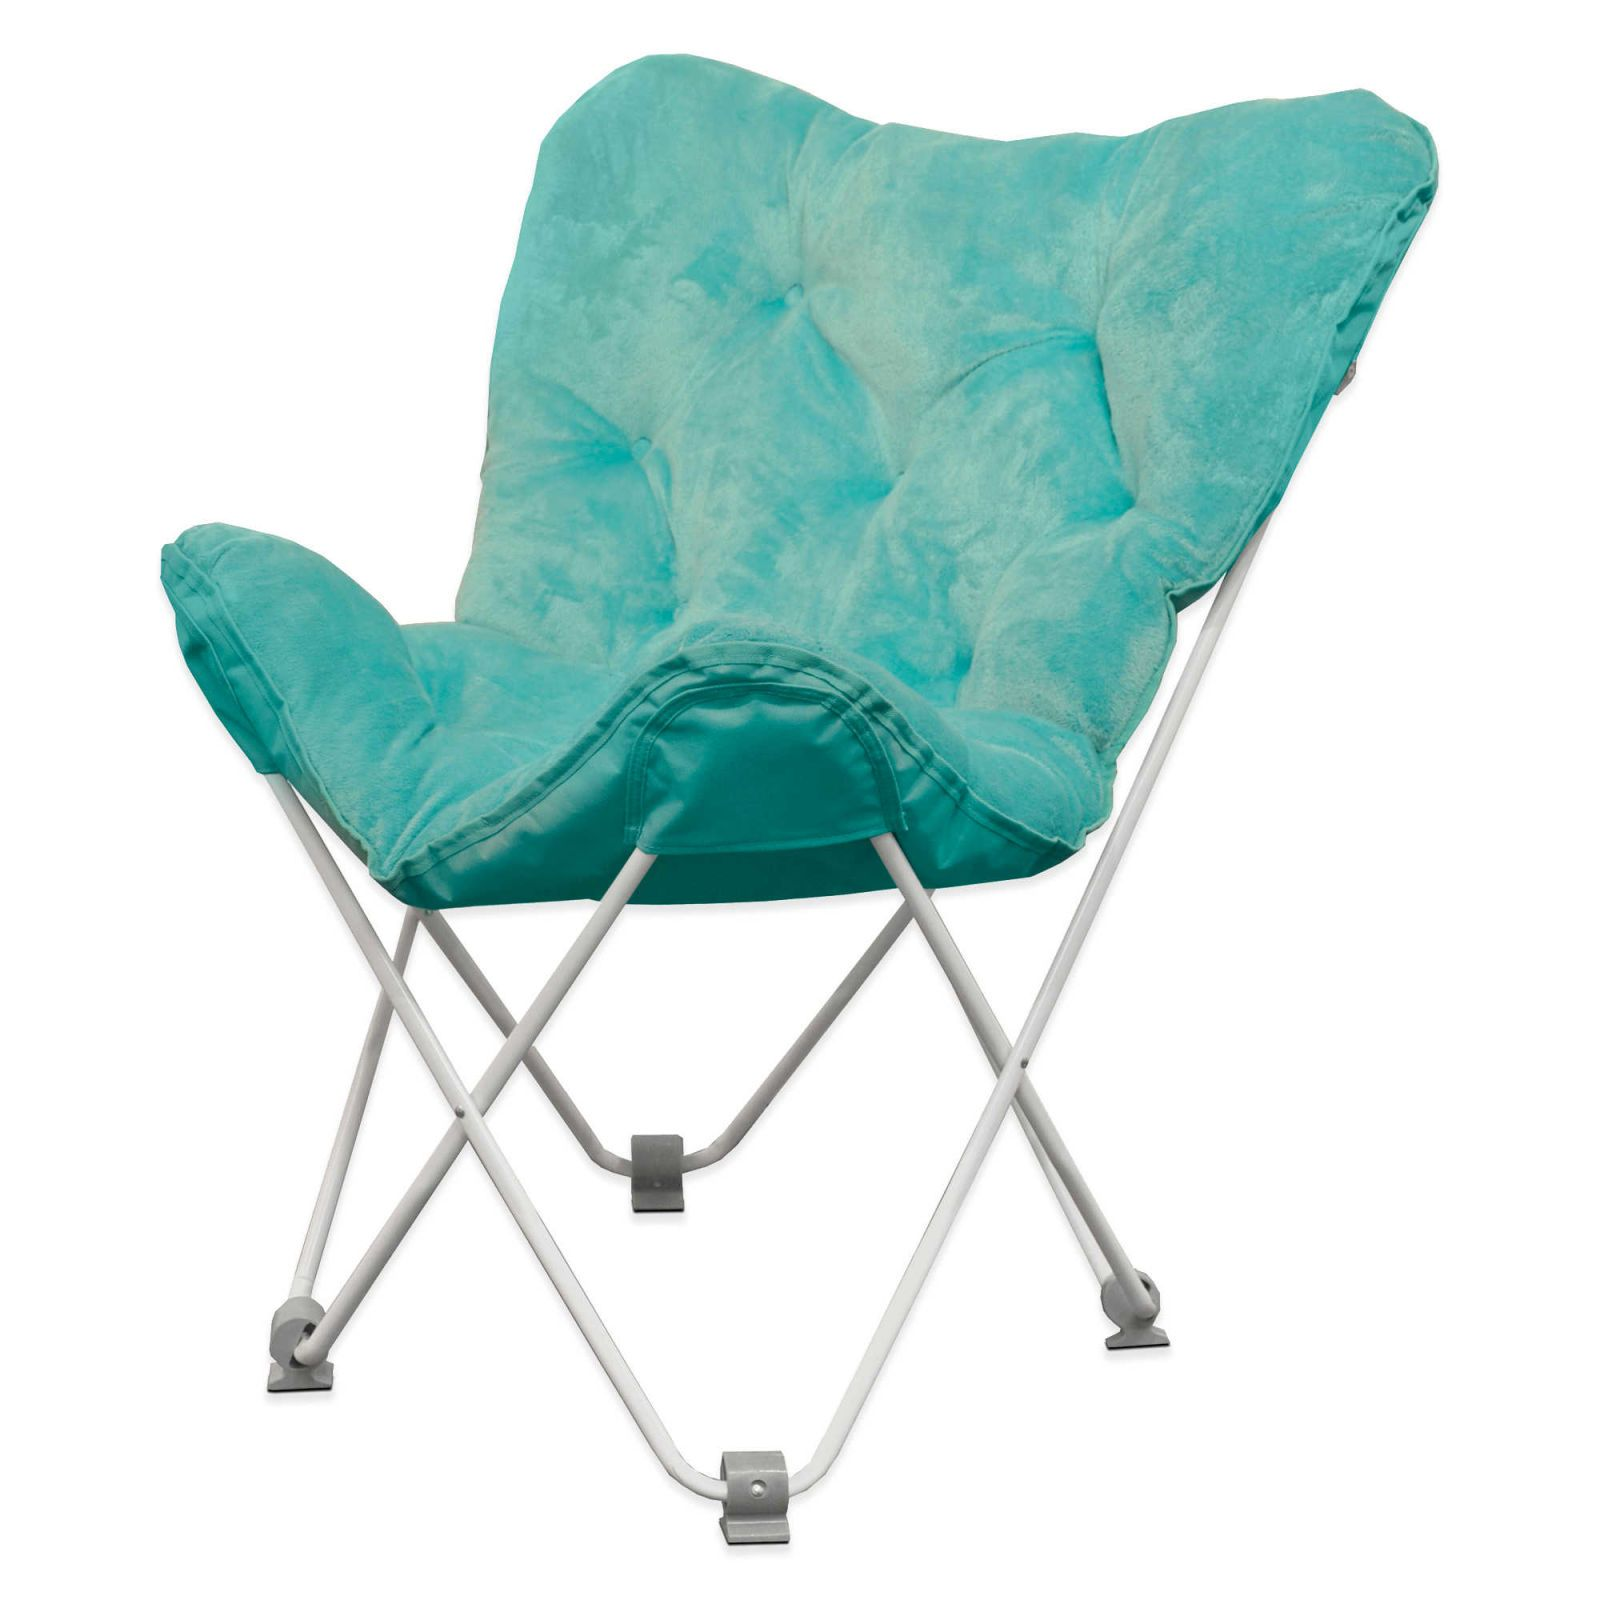 10 Stylish Yet Affordable Erfly Chairs For S